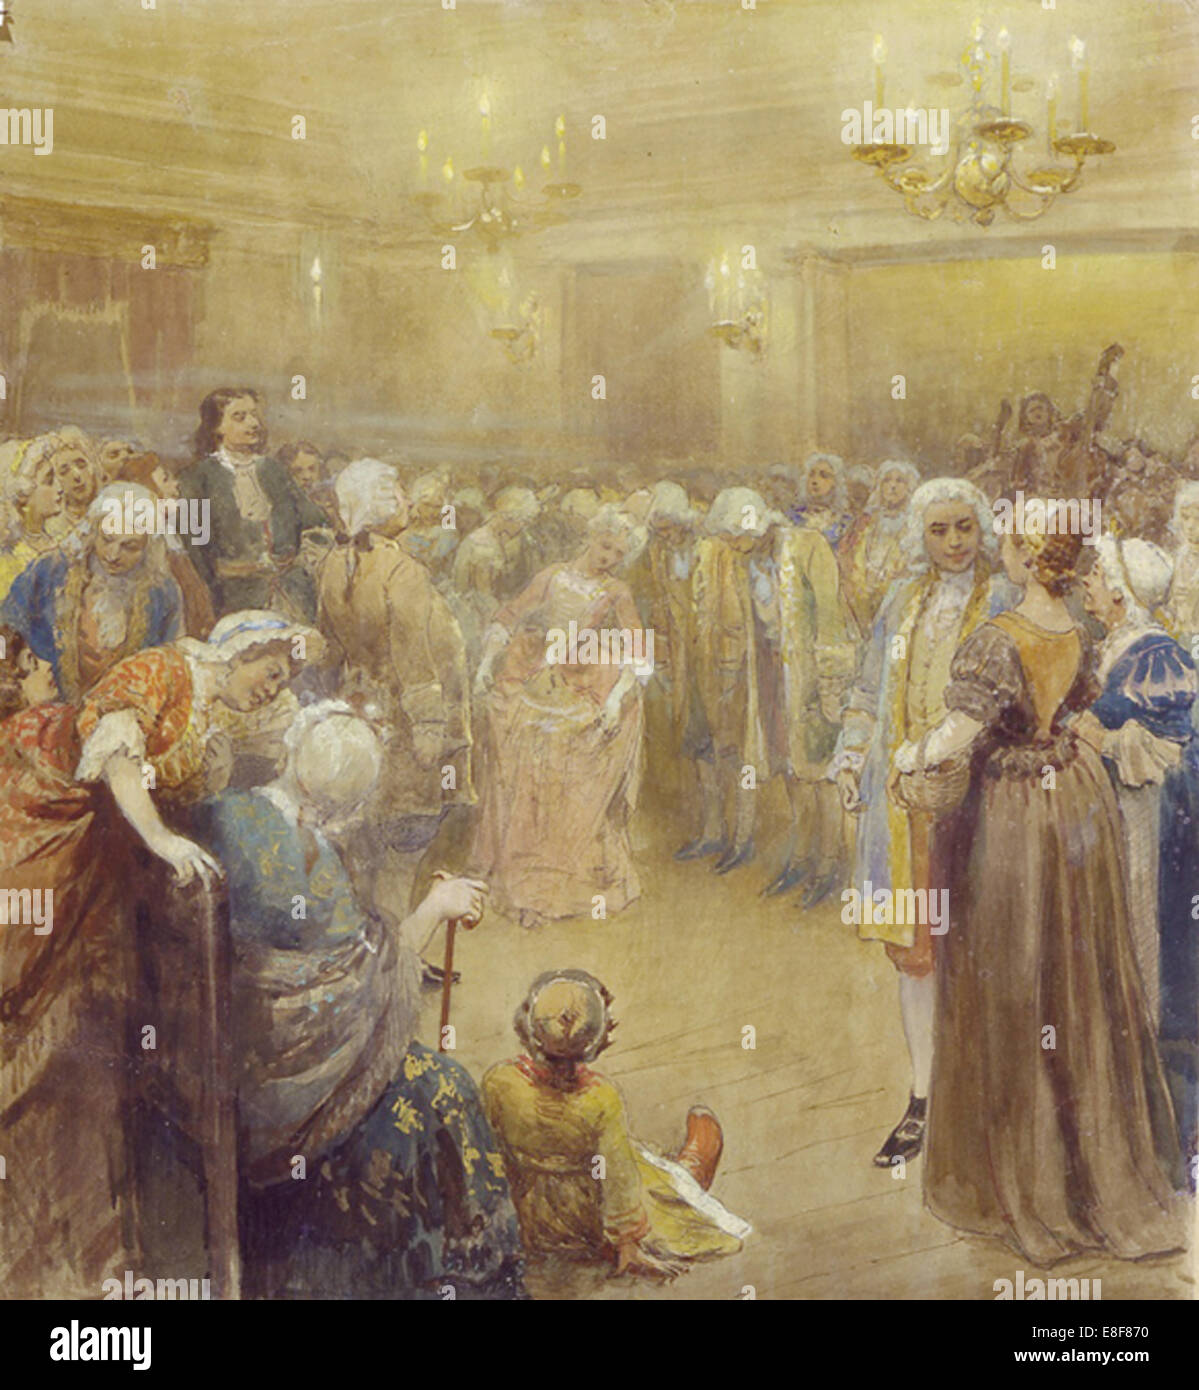 The Assembly at the time of Peter I. Artist: Lebedev, Klavdi Vasilyevich (1852-1916) - Stock Image